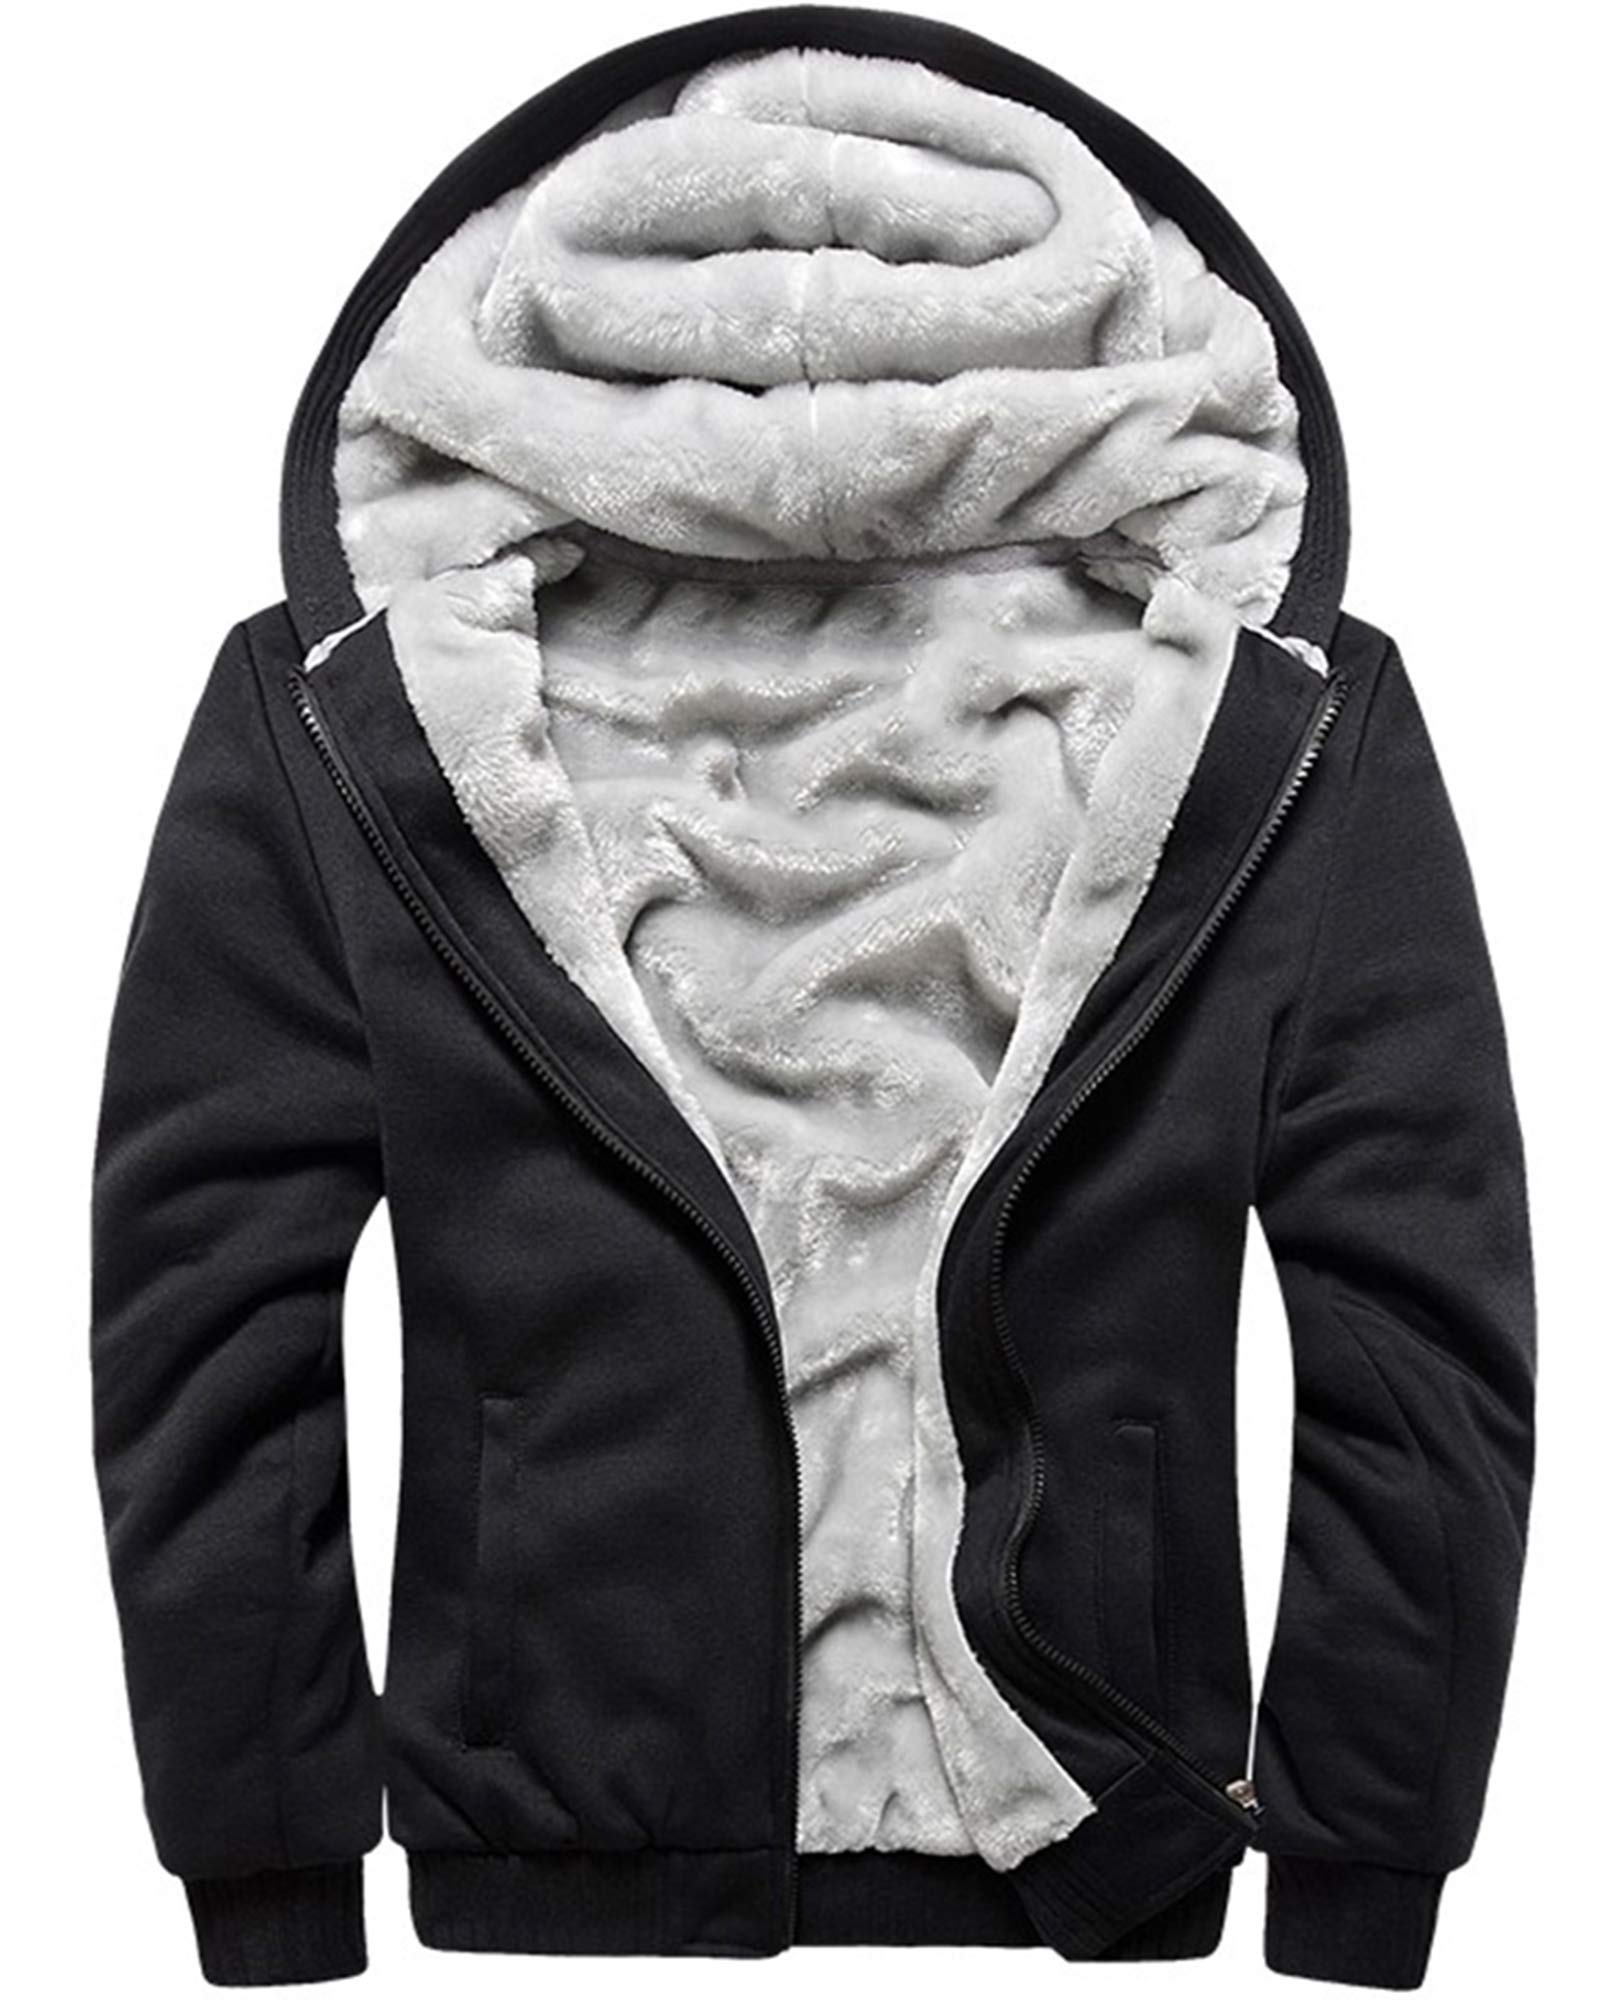 Nicetage Mens Fuzzy Sherpa Hoodie Lightweight Jacket Open Front Cardigans Coat with Pockets No Zipper